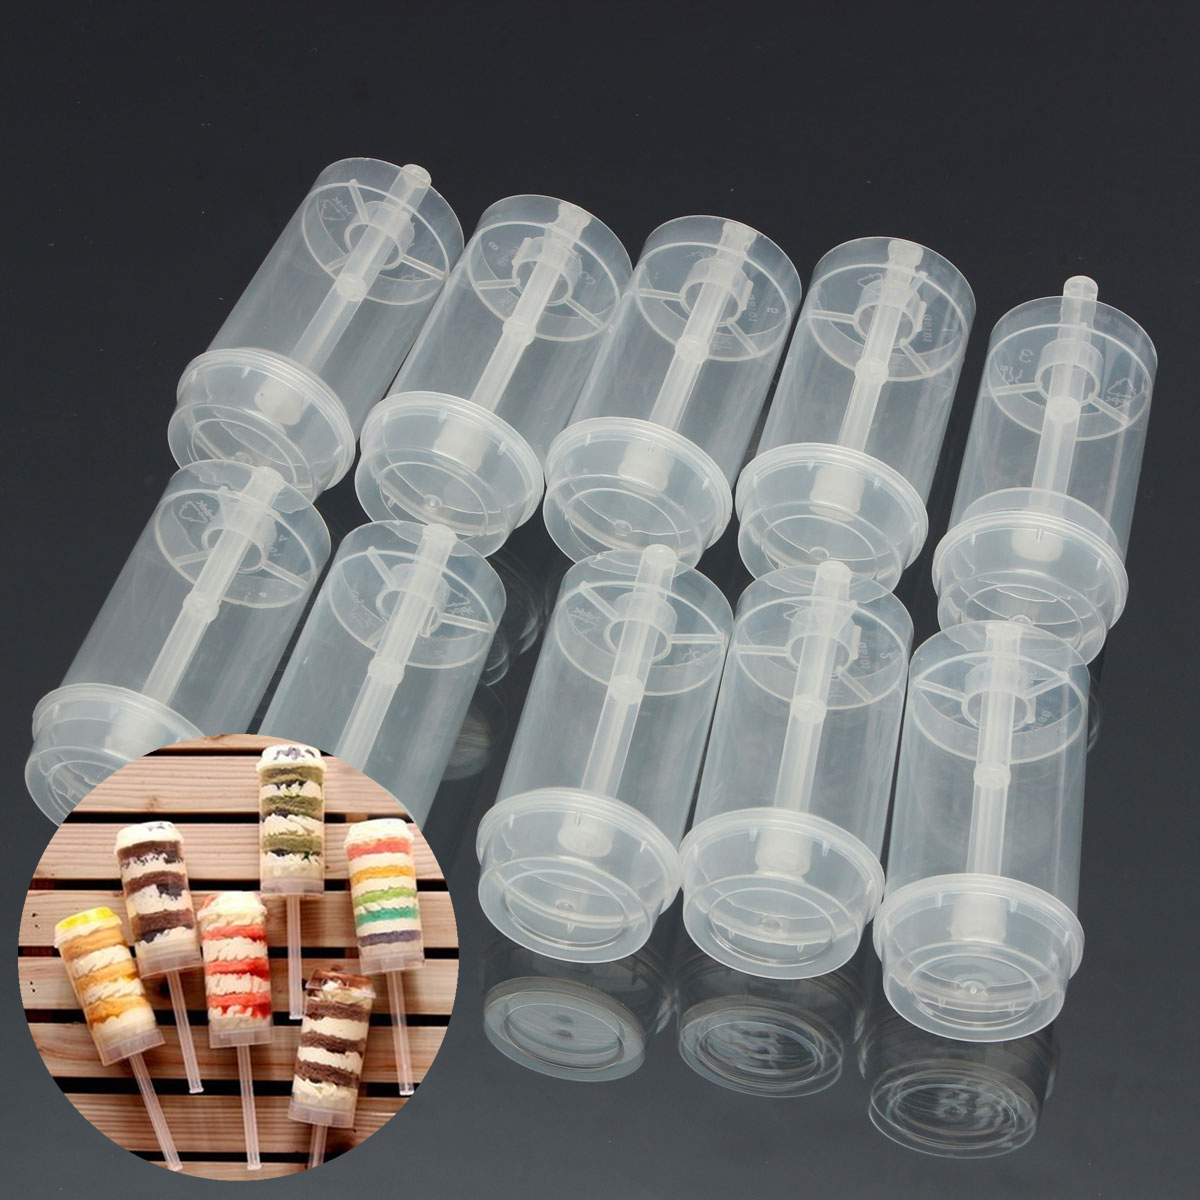 caketool;dessertcontainer;cakecontainer;pushuppop;cakecup;pushupcontainer;cakemaking;cakedecoratingsupplie;dessertdecorating;dessertpushuppop 10Pcs Plastic Push Up Pop Cake Containers Lids Shooters We